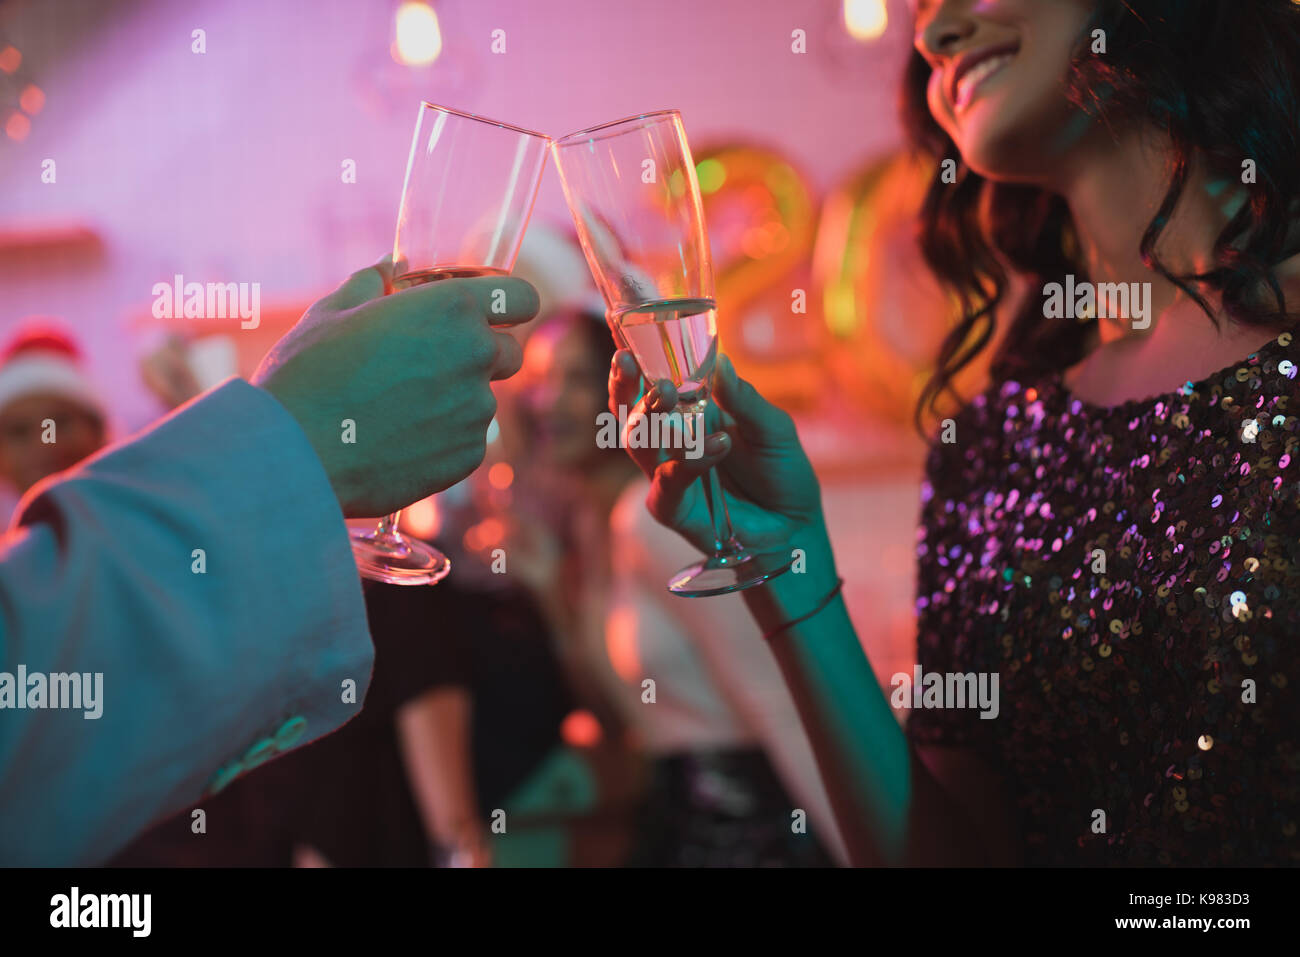 Friends clinking glasses of champagne Photo Stock